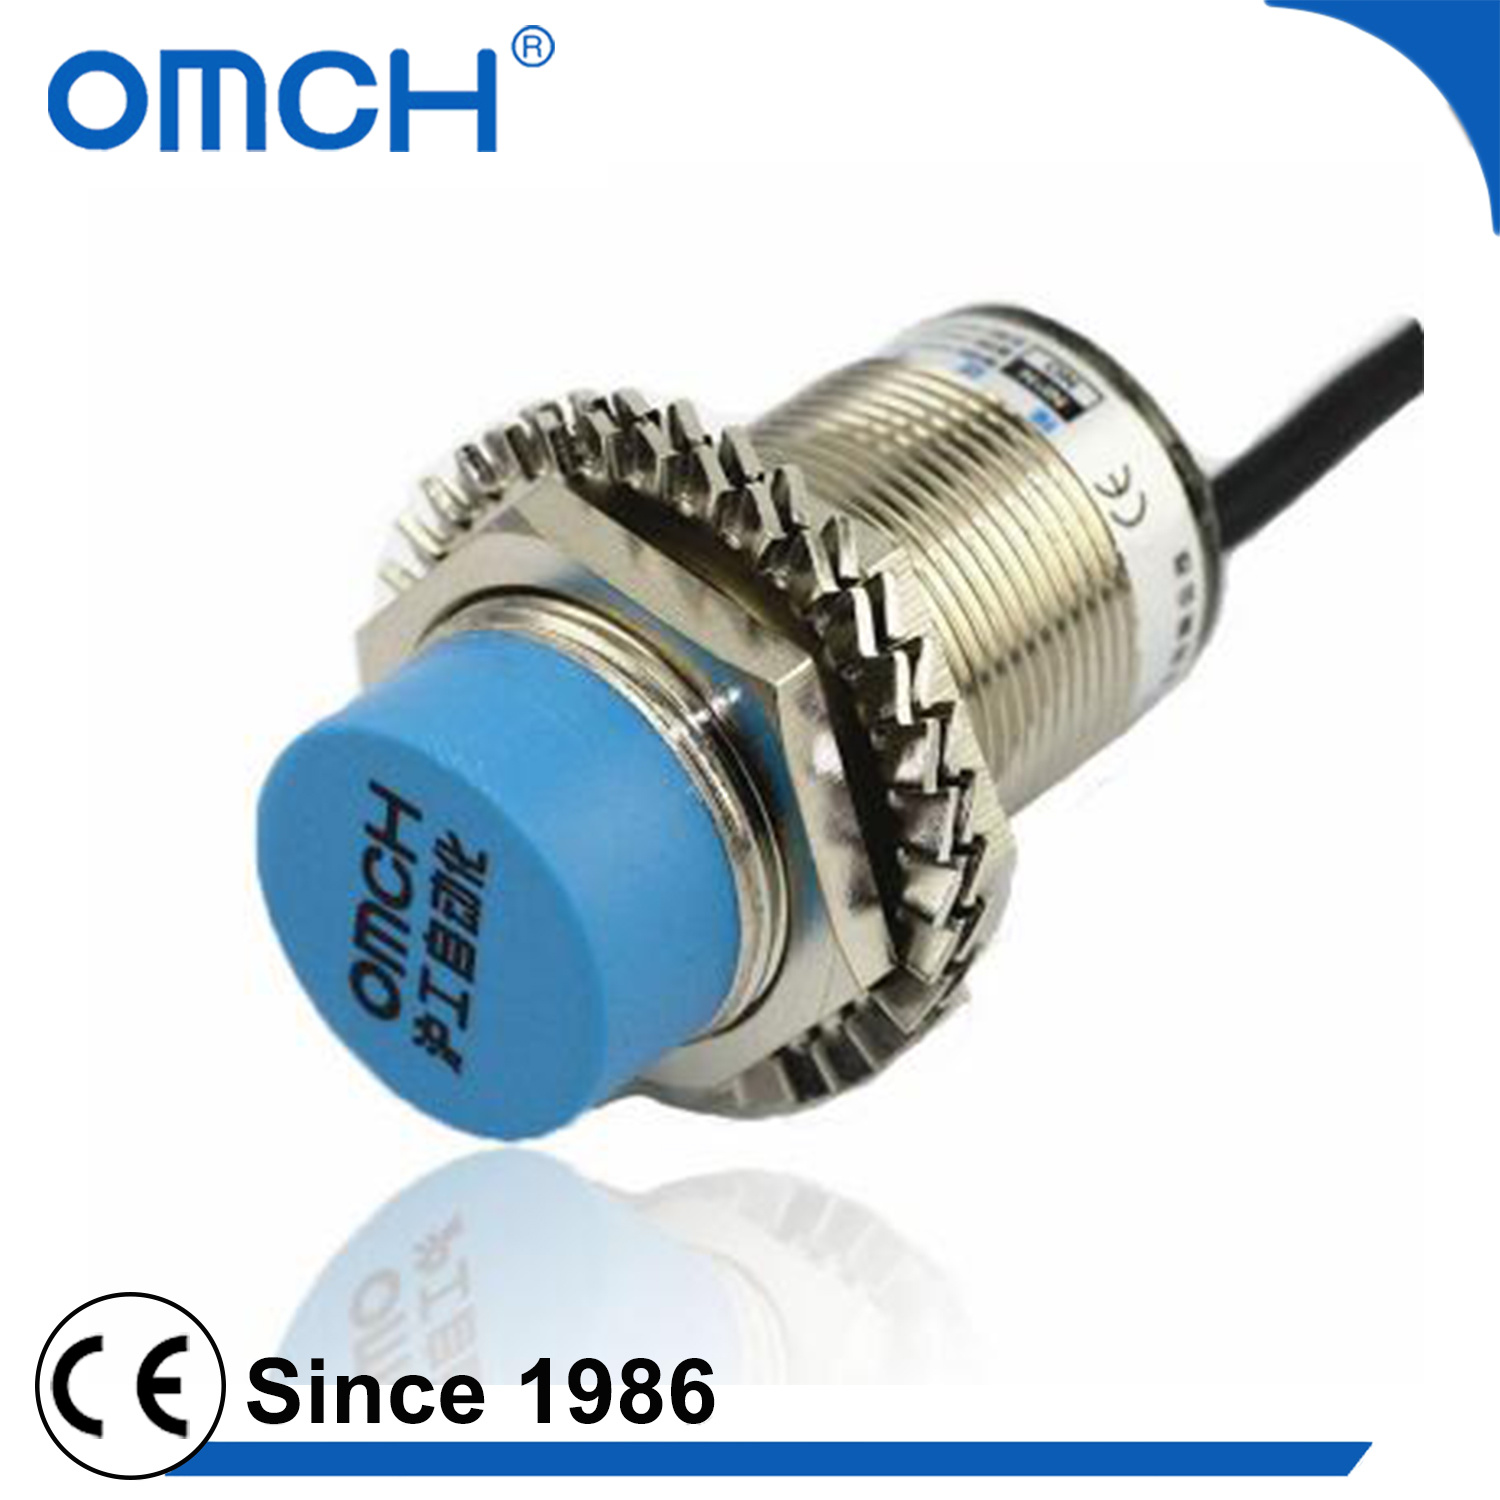 China Omch Lj30 Series M30 Position Sensor Inductive Proximity ...